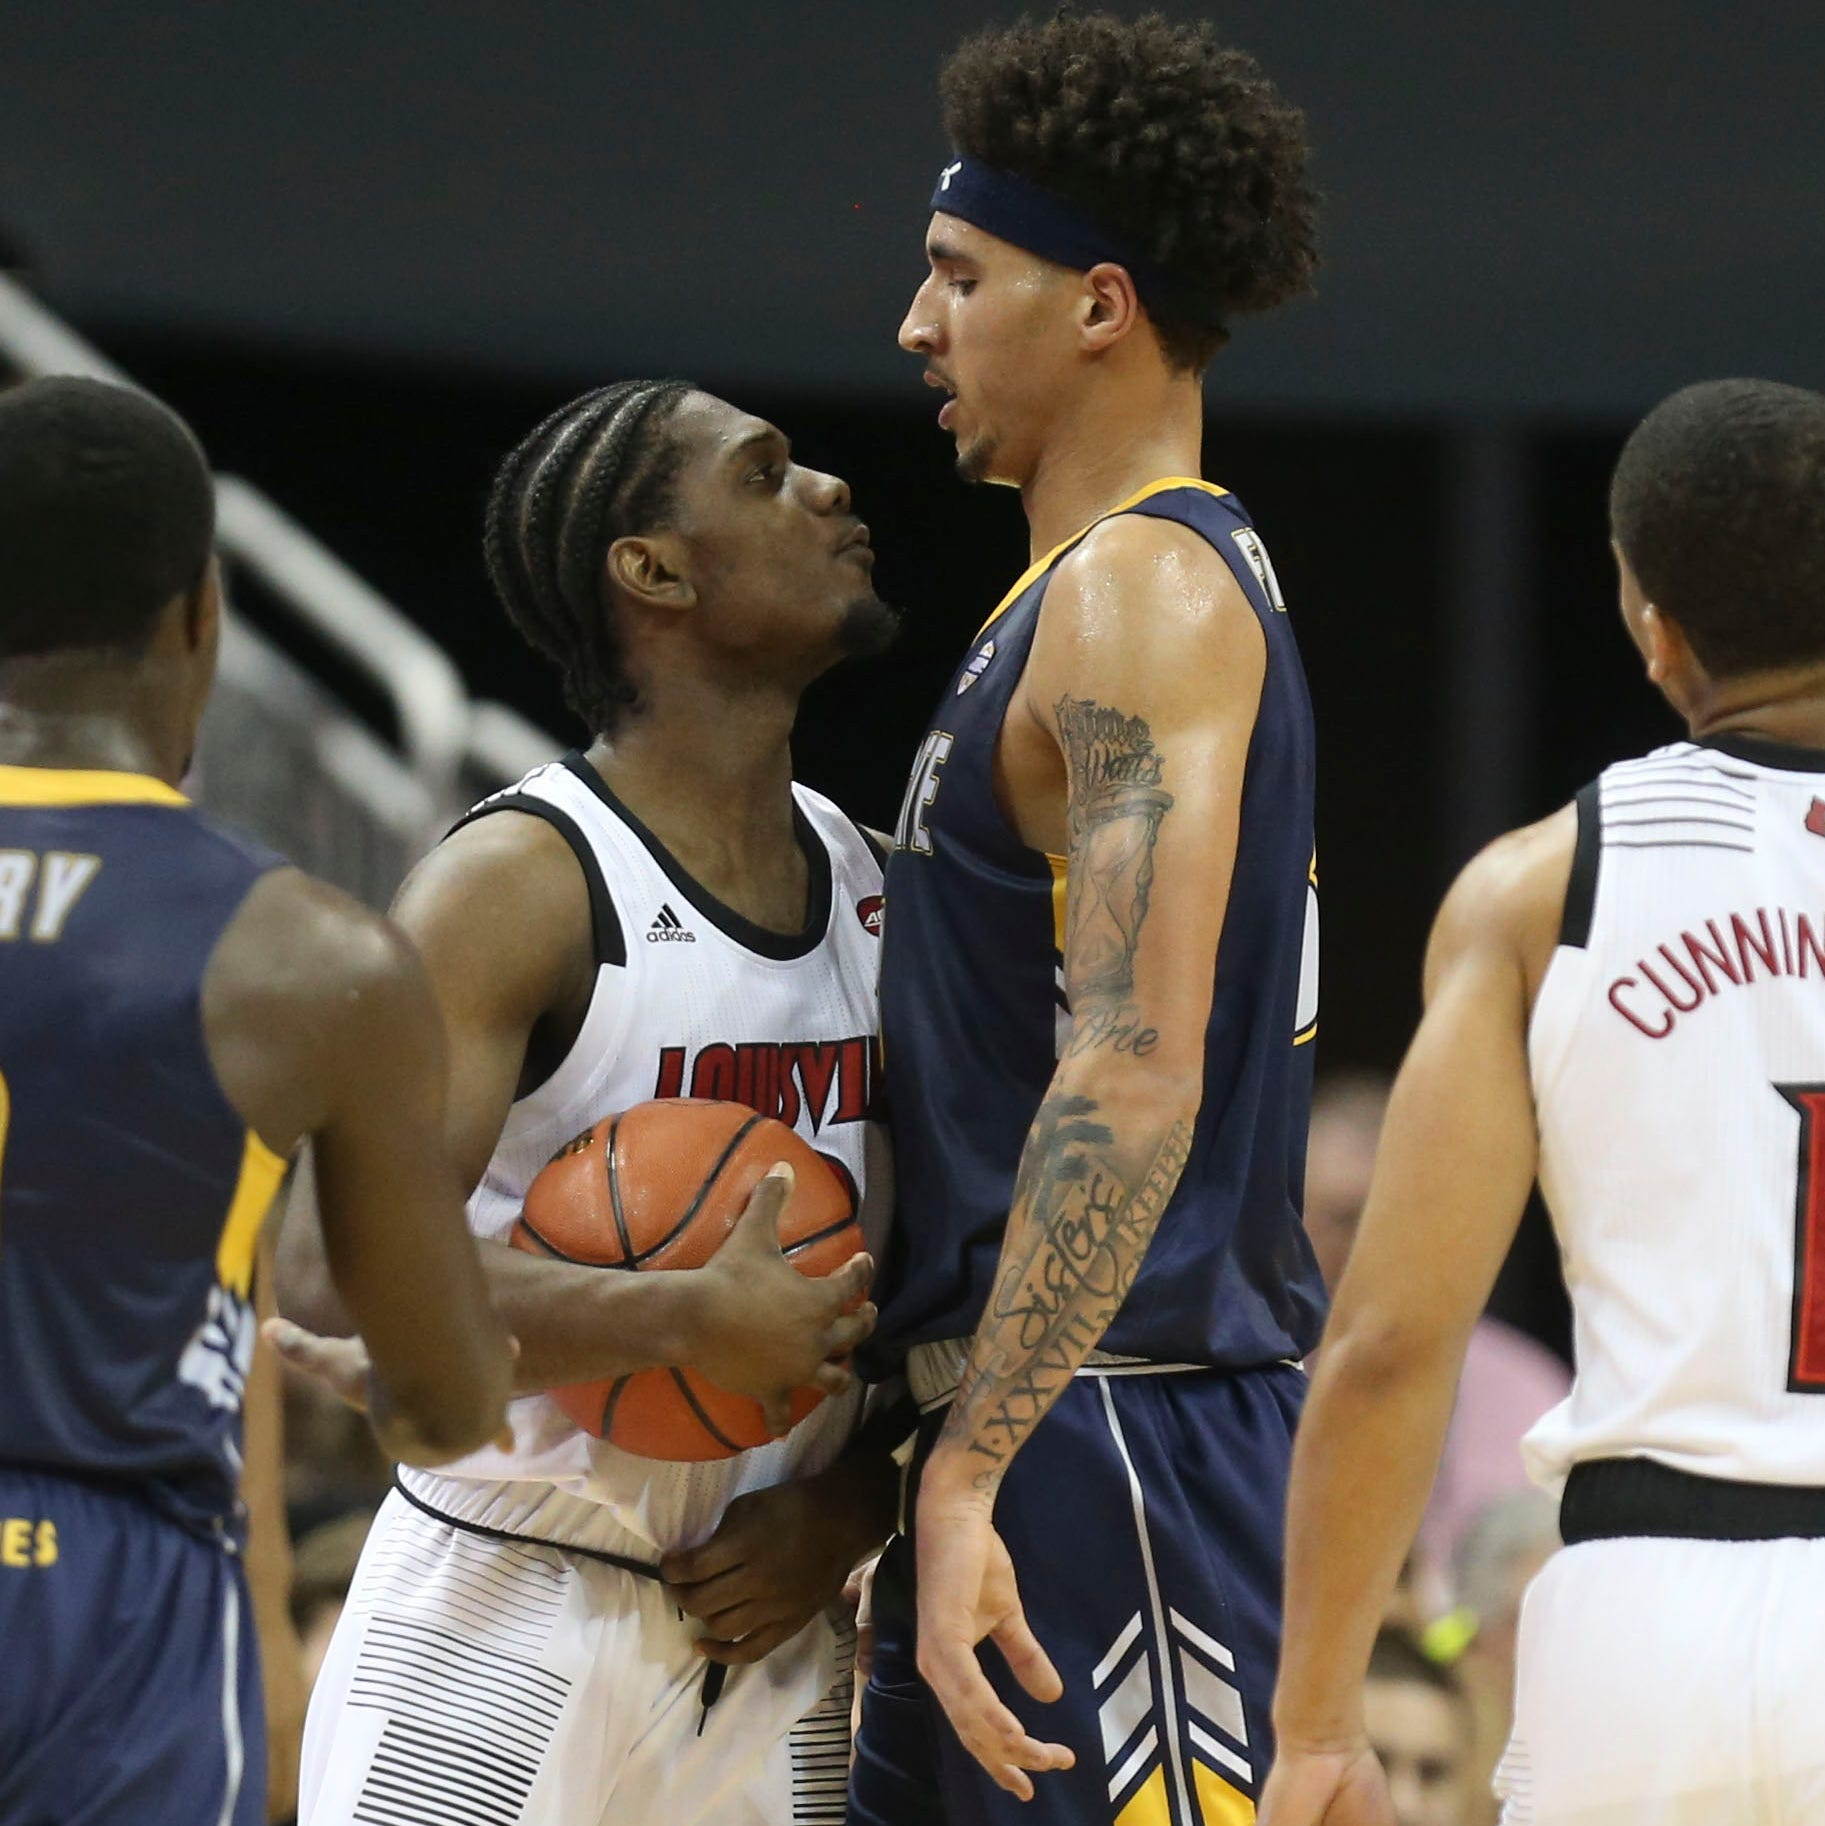 Key takeaways from Louisville basketball's domination of Kent State